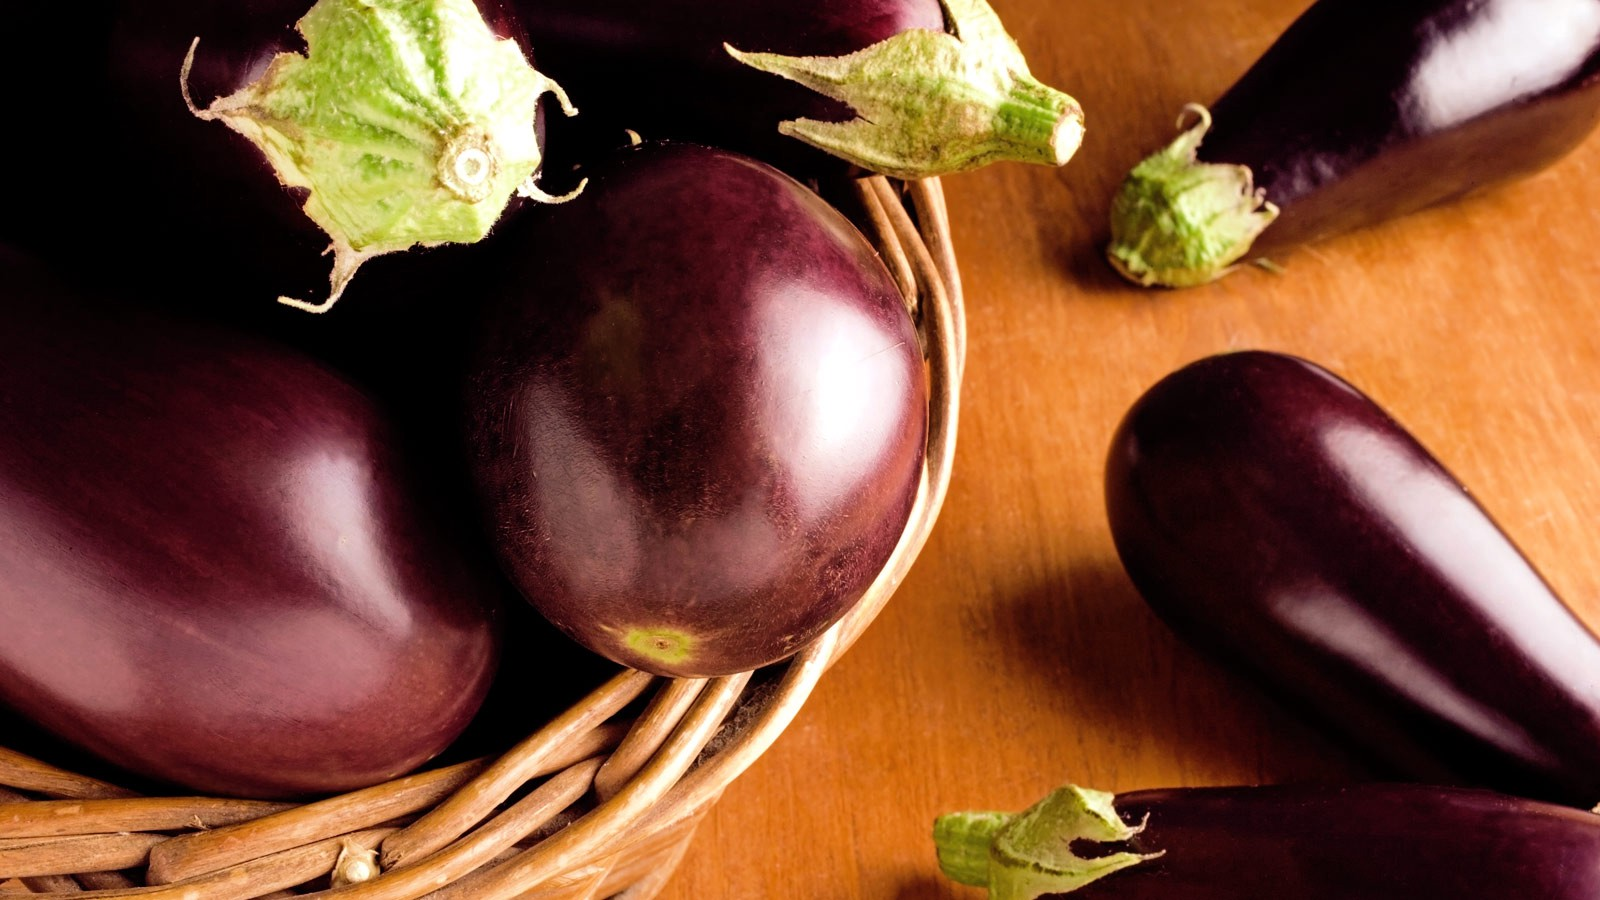 Nightshades: Why Eating the These Fruits and Vegetables Can Make Pain Worse